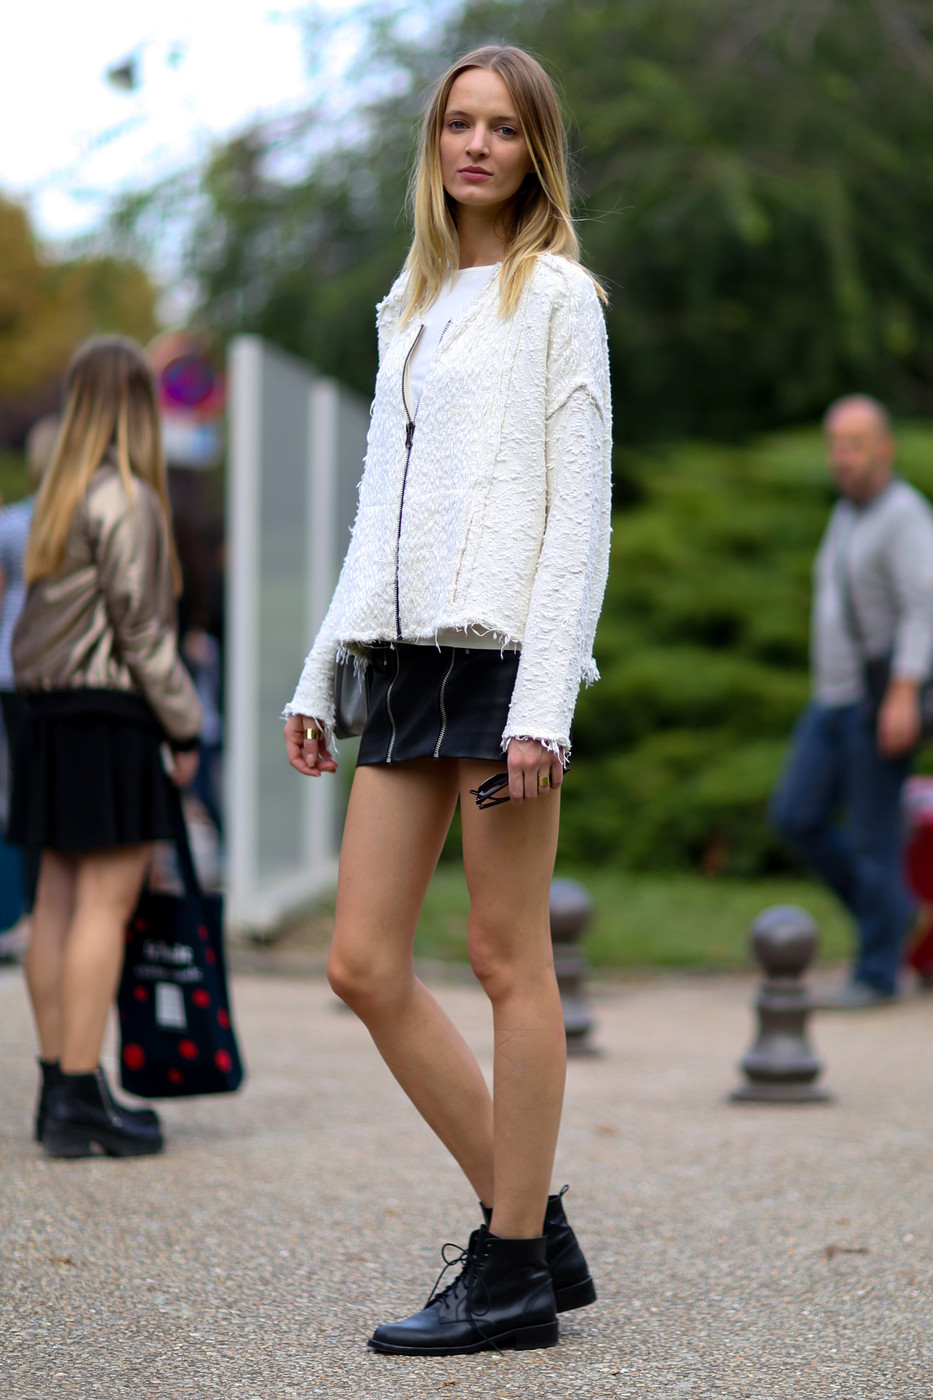 Zipped Up Best Street Style From Paris Fashion Week Spring 2015 Stylebistro